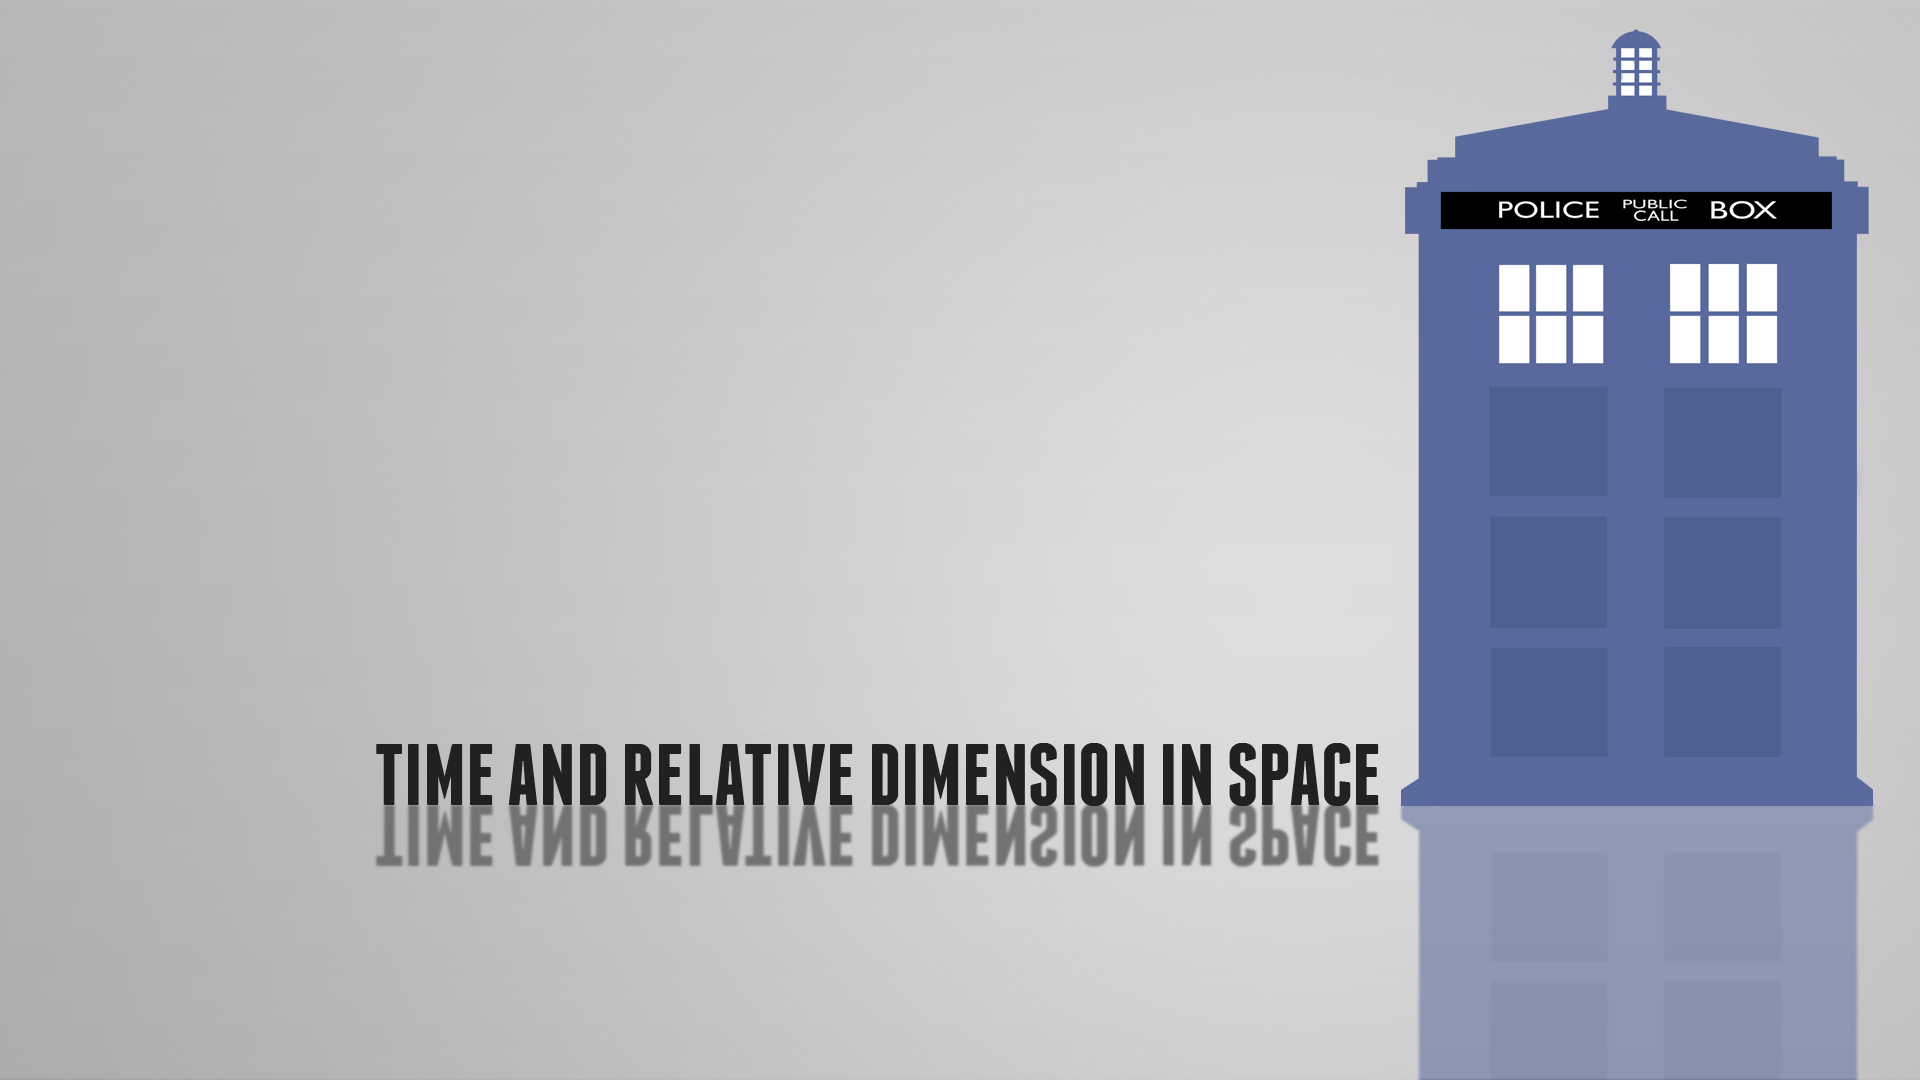 tardis-wallpaper-1920x1080